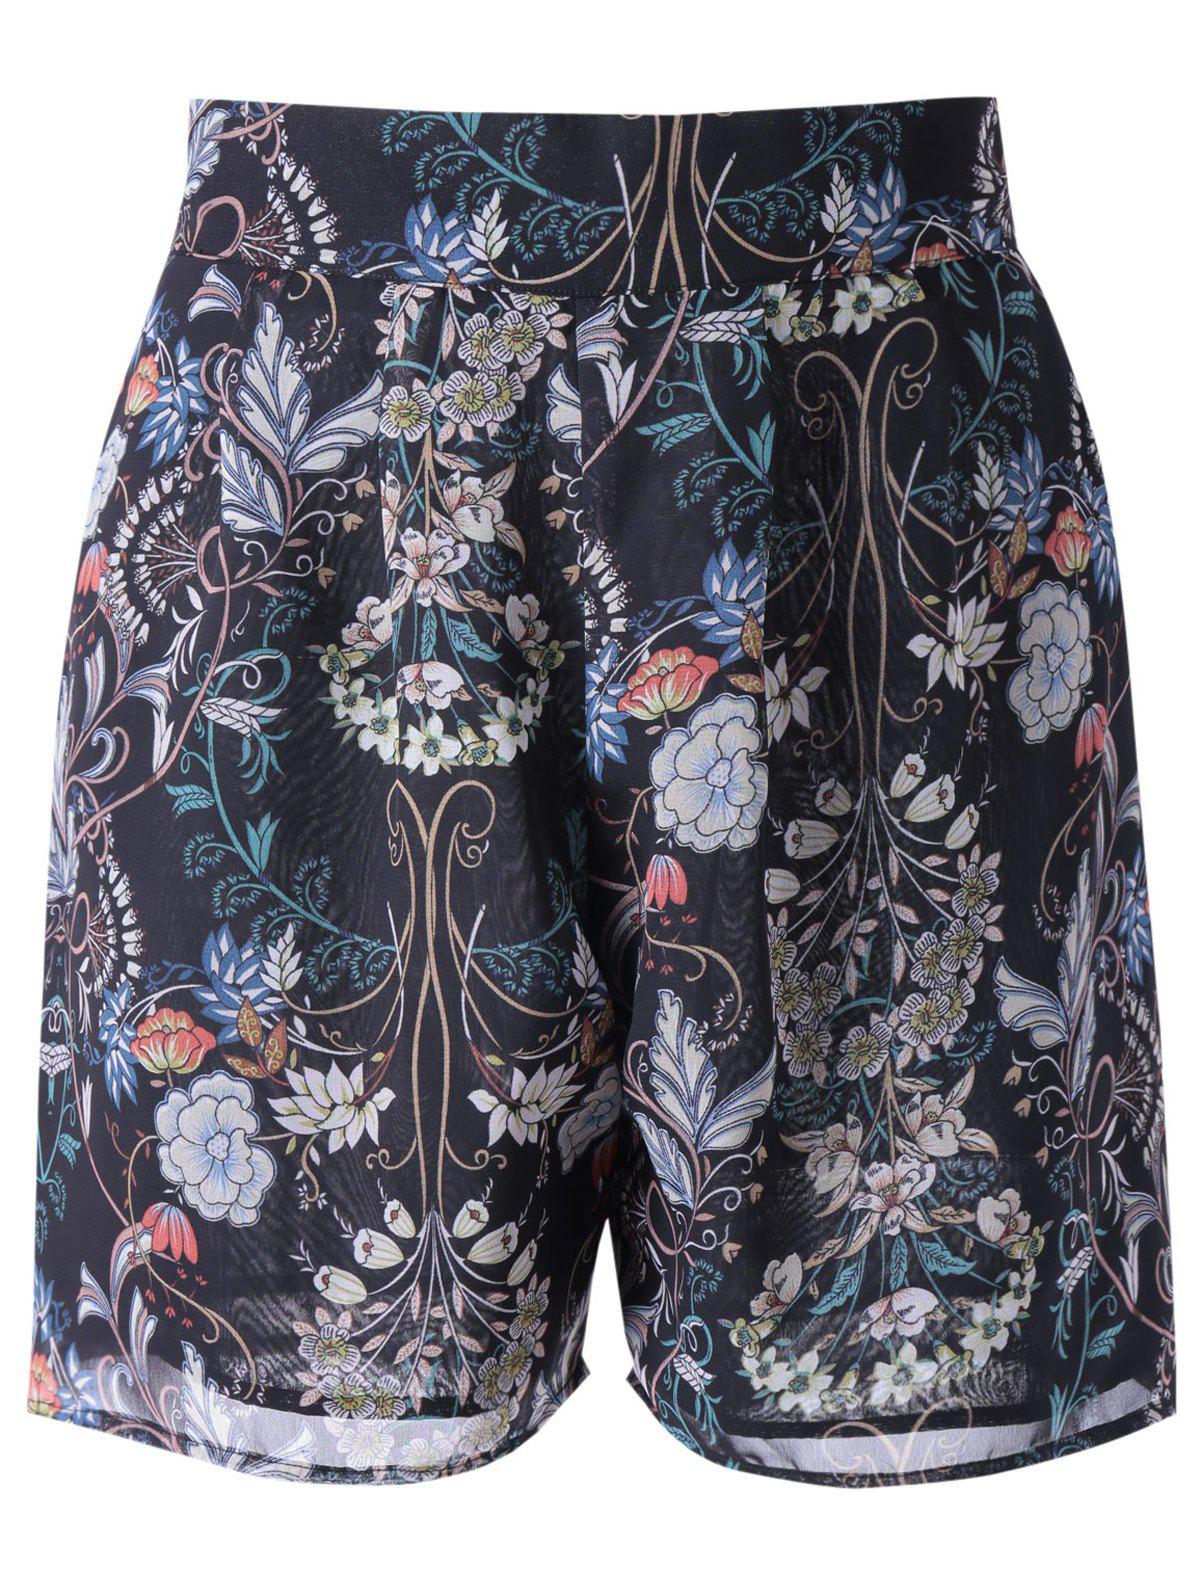 Fashionable Women's Loose-Fitting High Rise Floral Print Shorts - BLACK XL